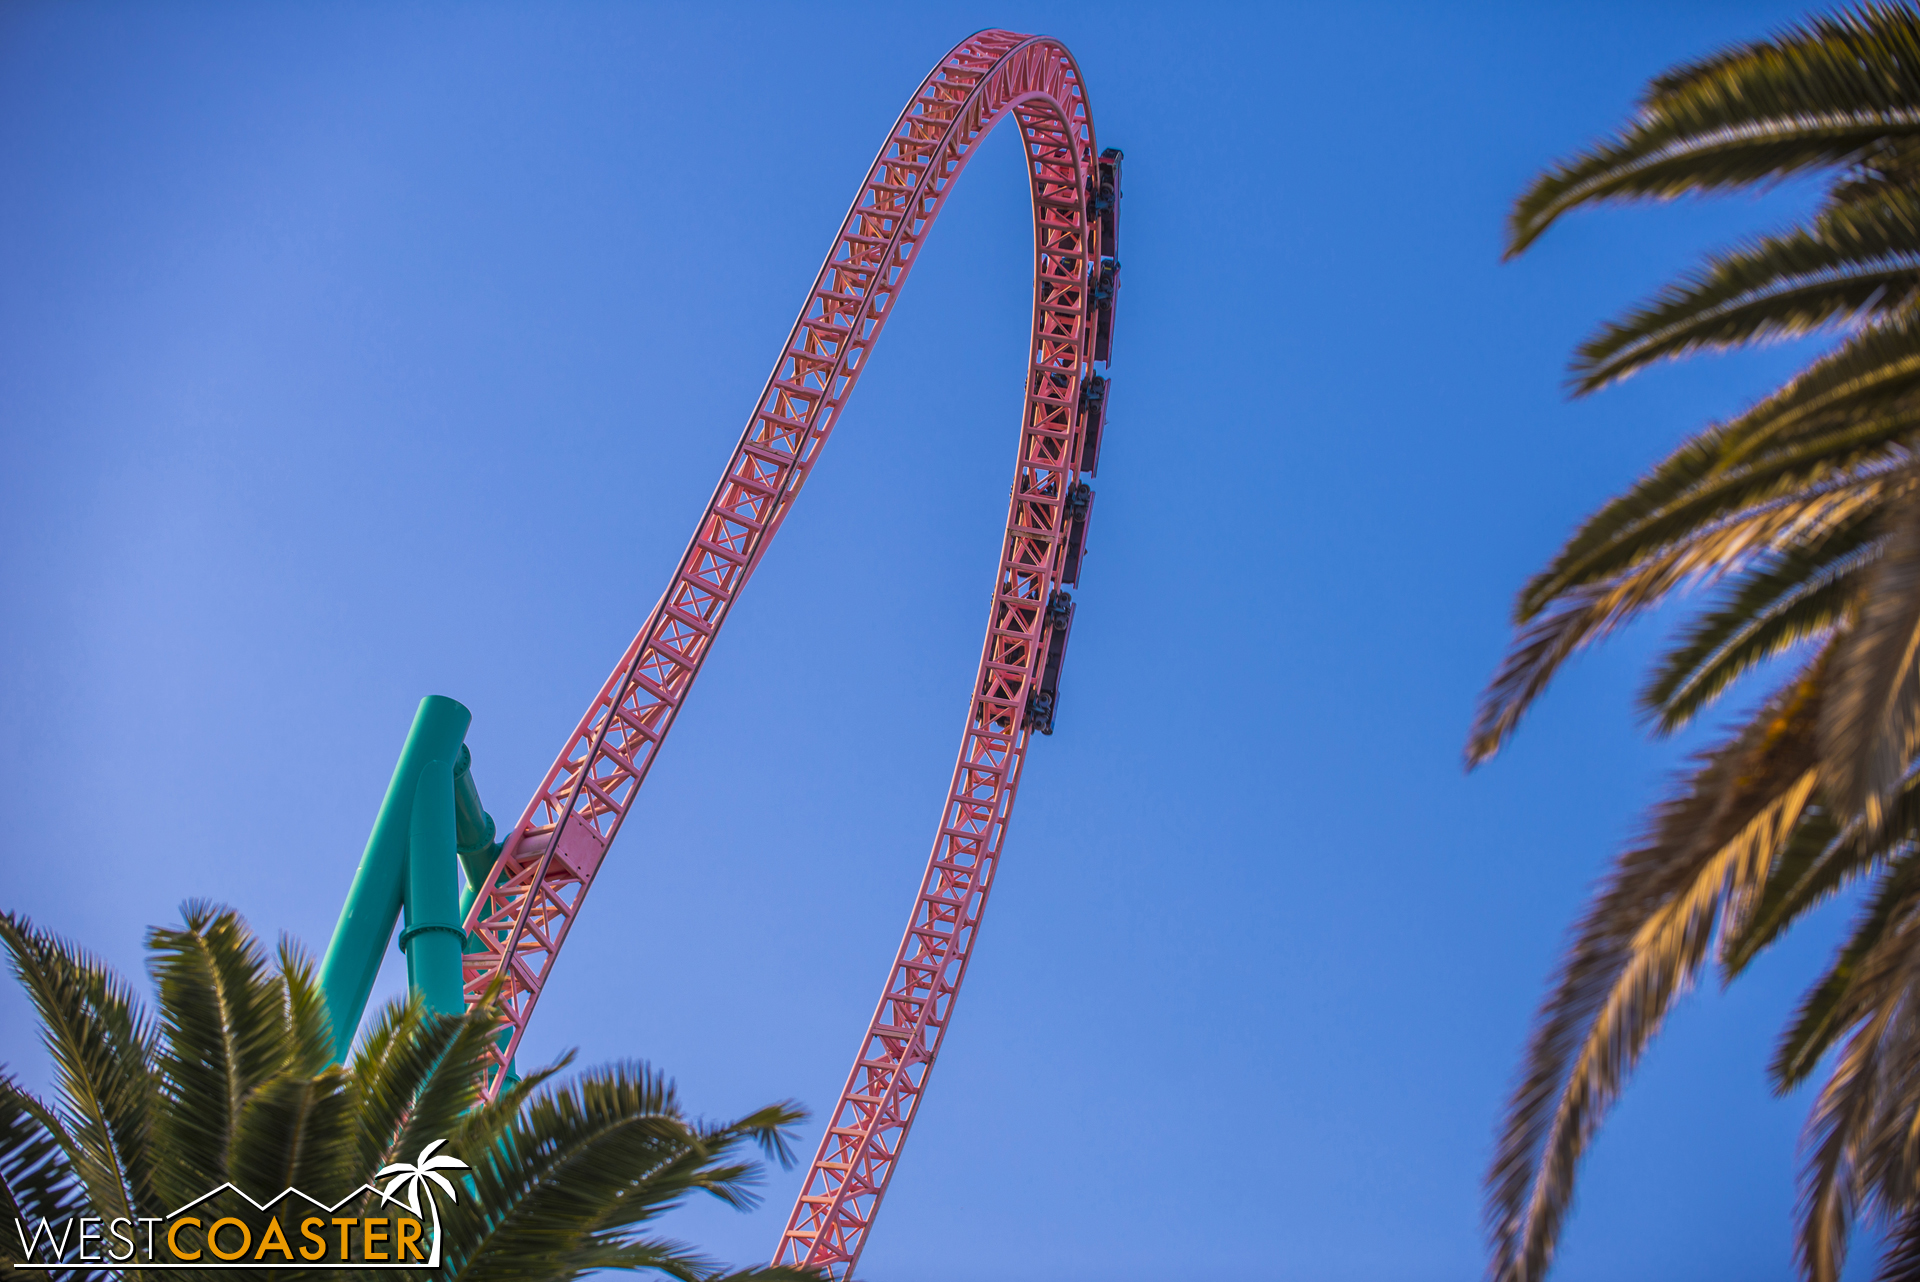 But Xcelerator still looks and rides great.